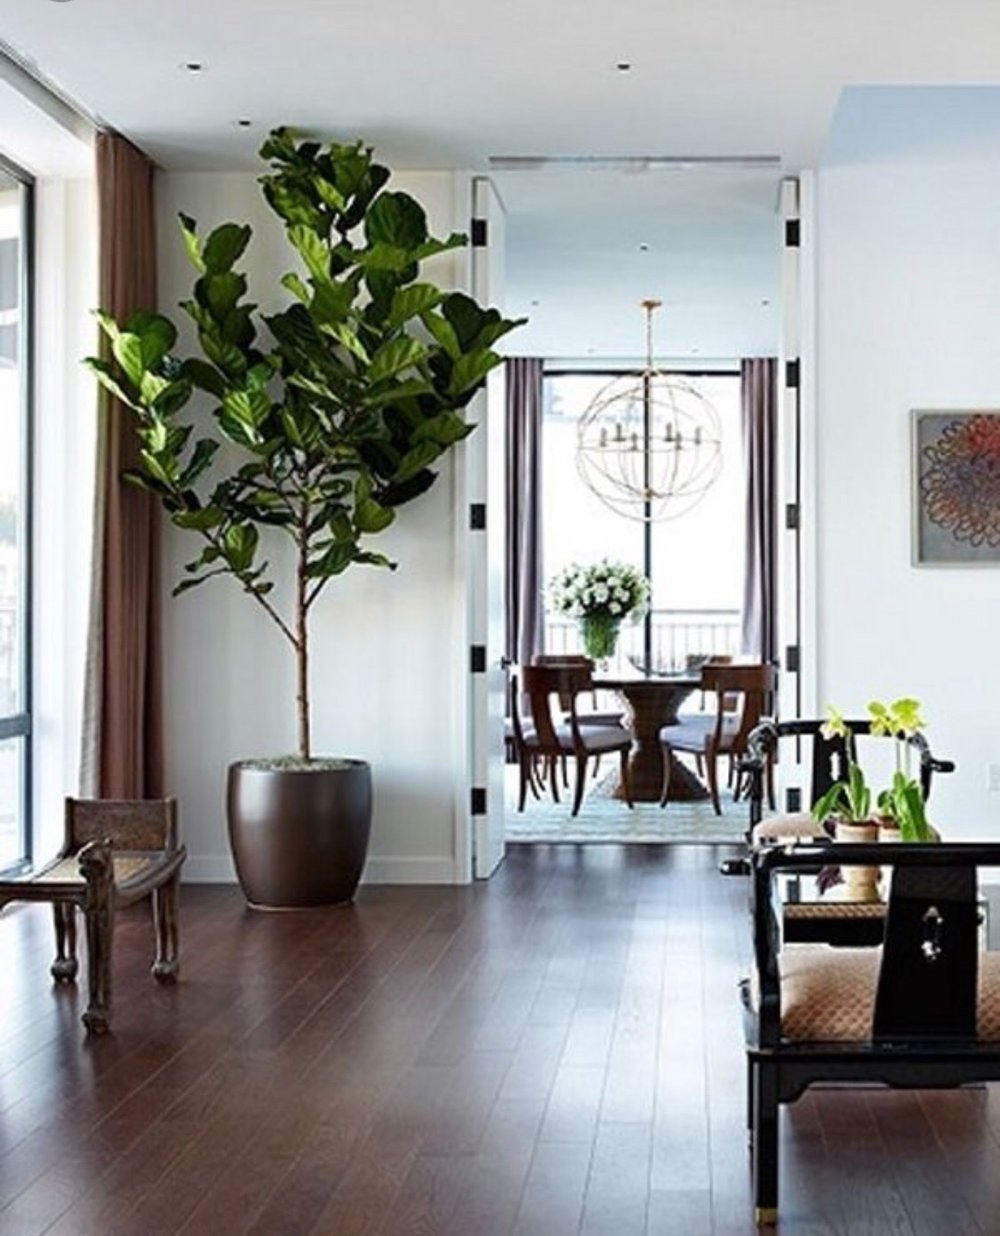 A stunning fiddle ficus makes a real style statement.